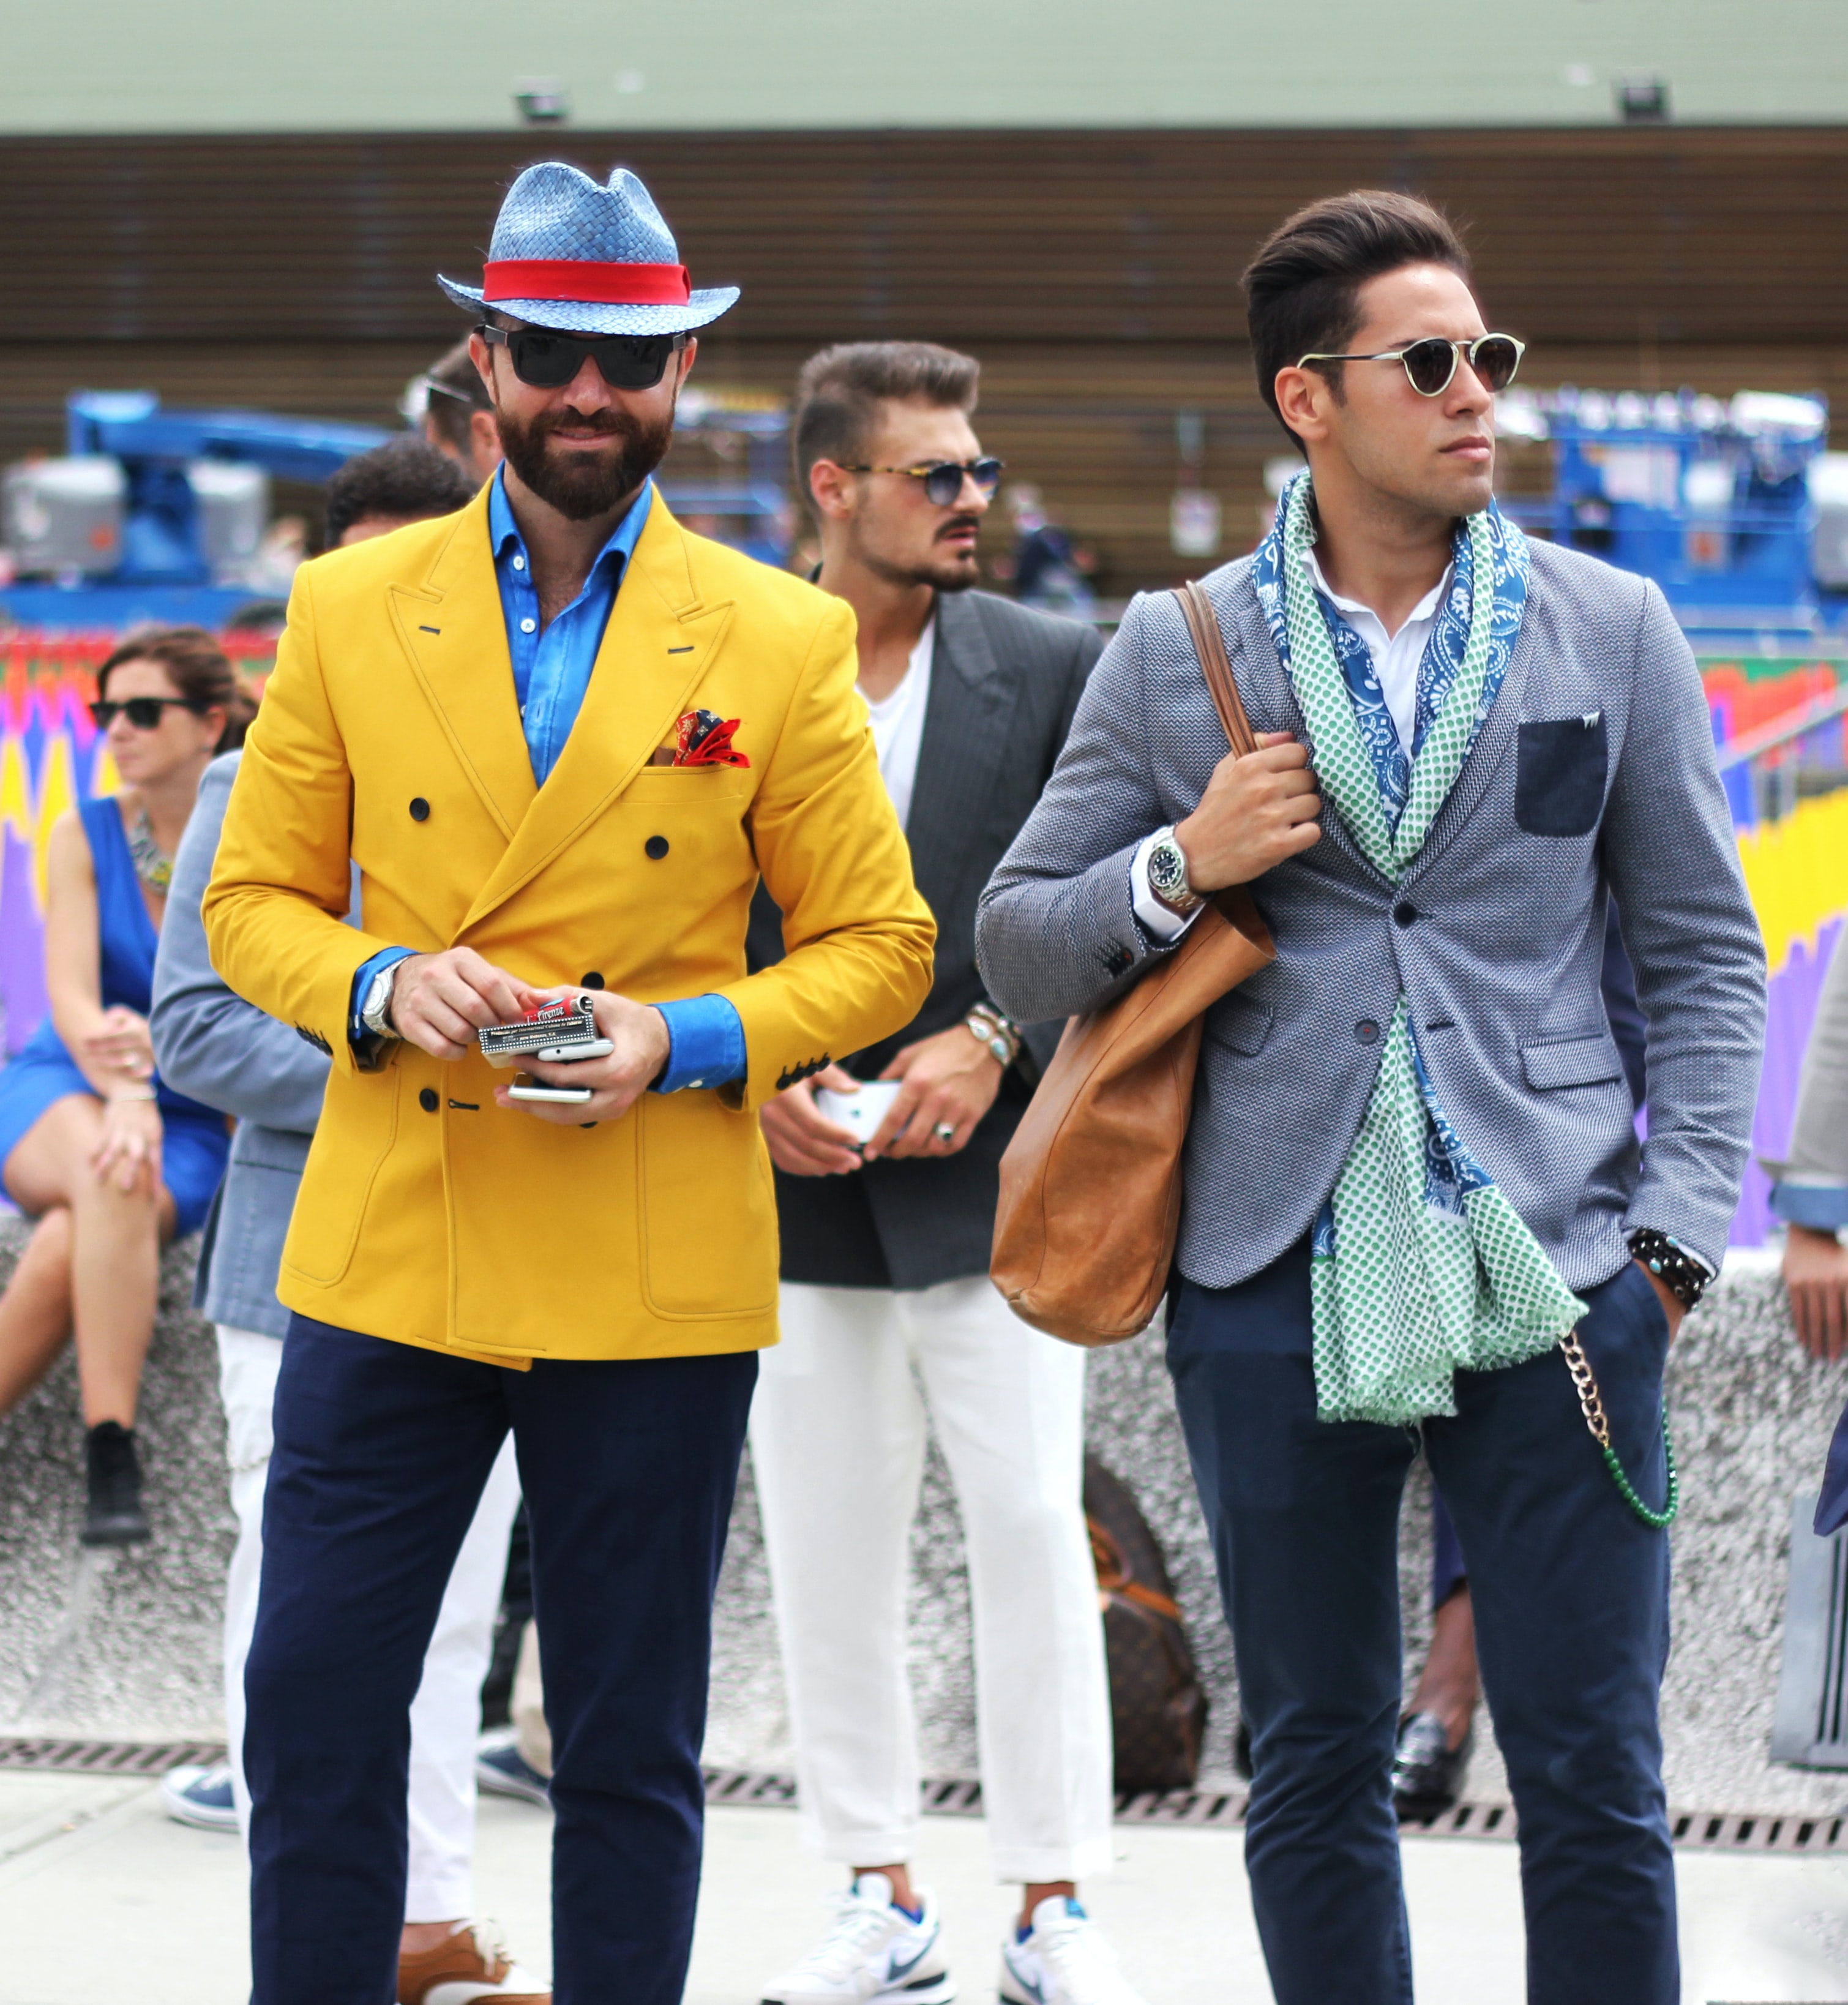 Men in colorful suits standing fashionably at Fortezza de Basso